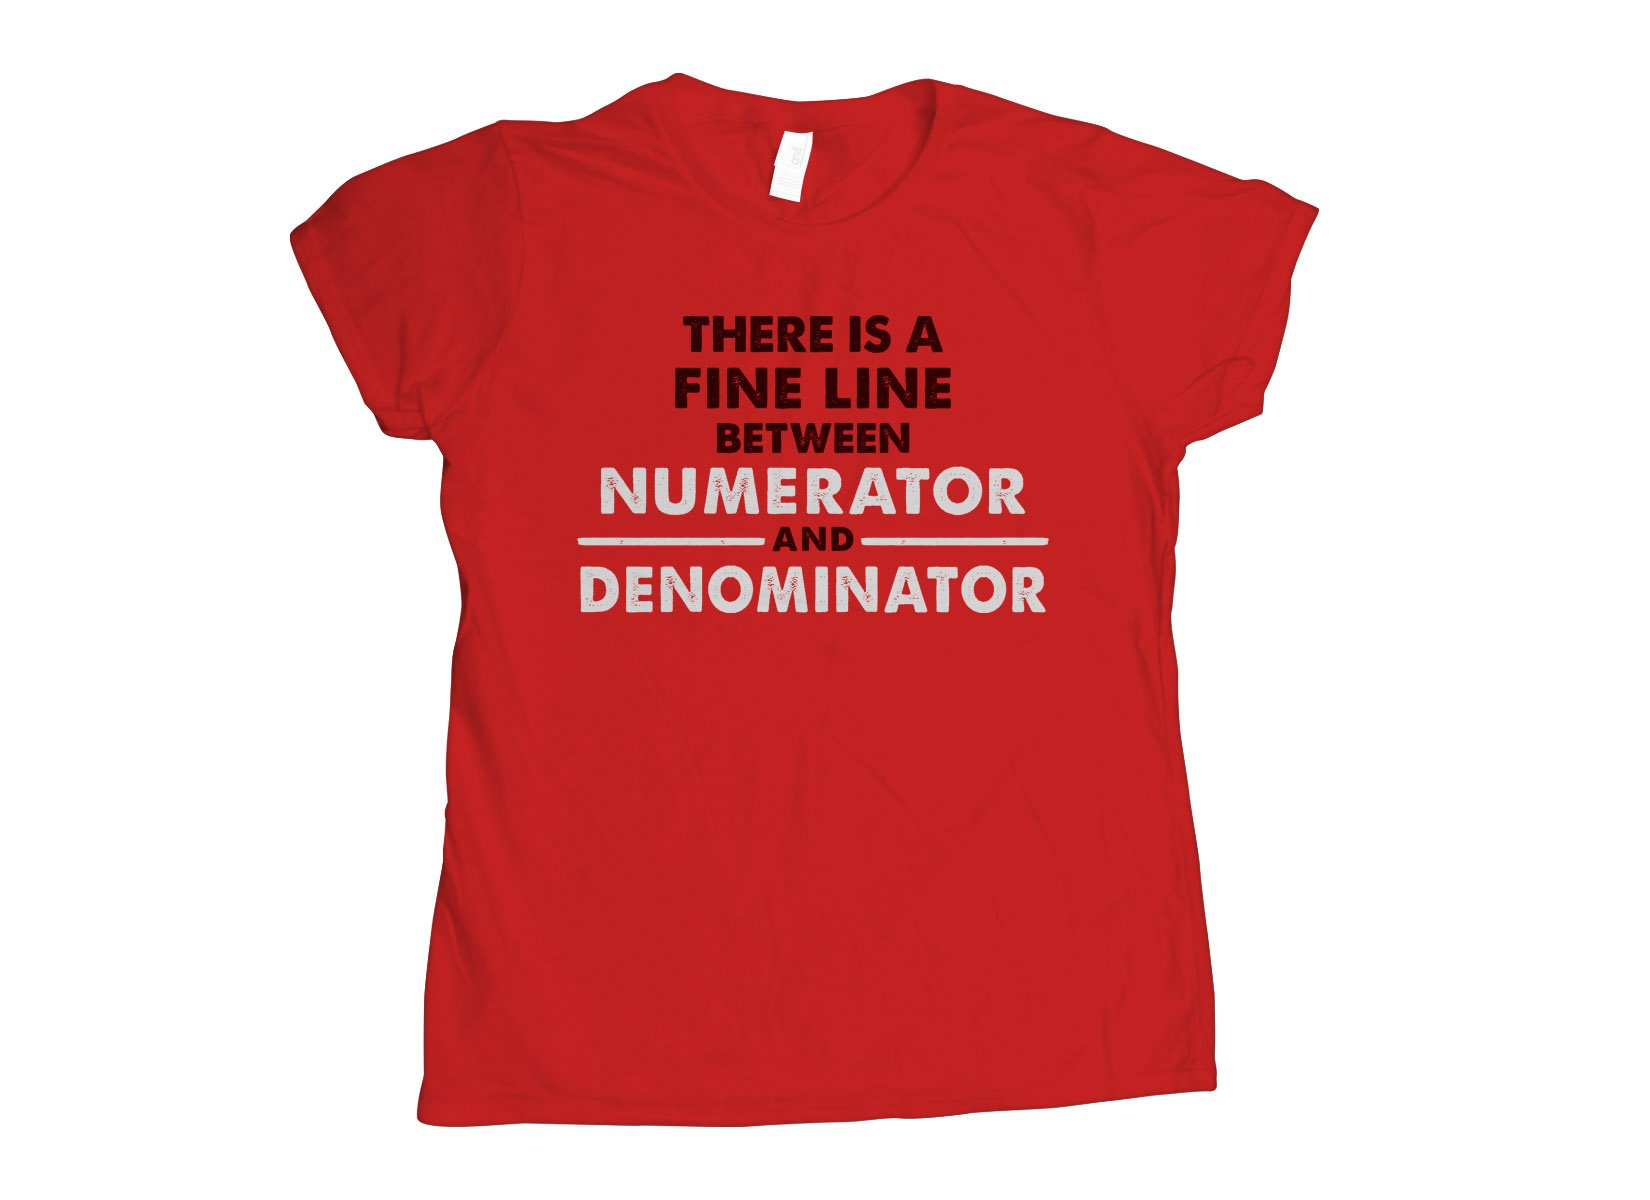 There Is A Fine Line Between Numerator And Denominator on Womens T-Shirt